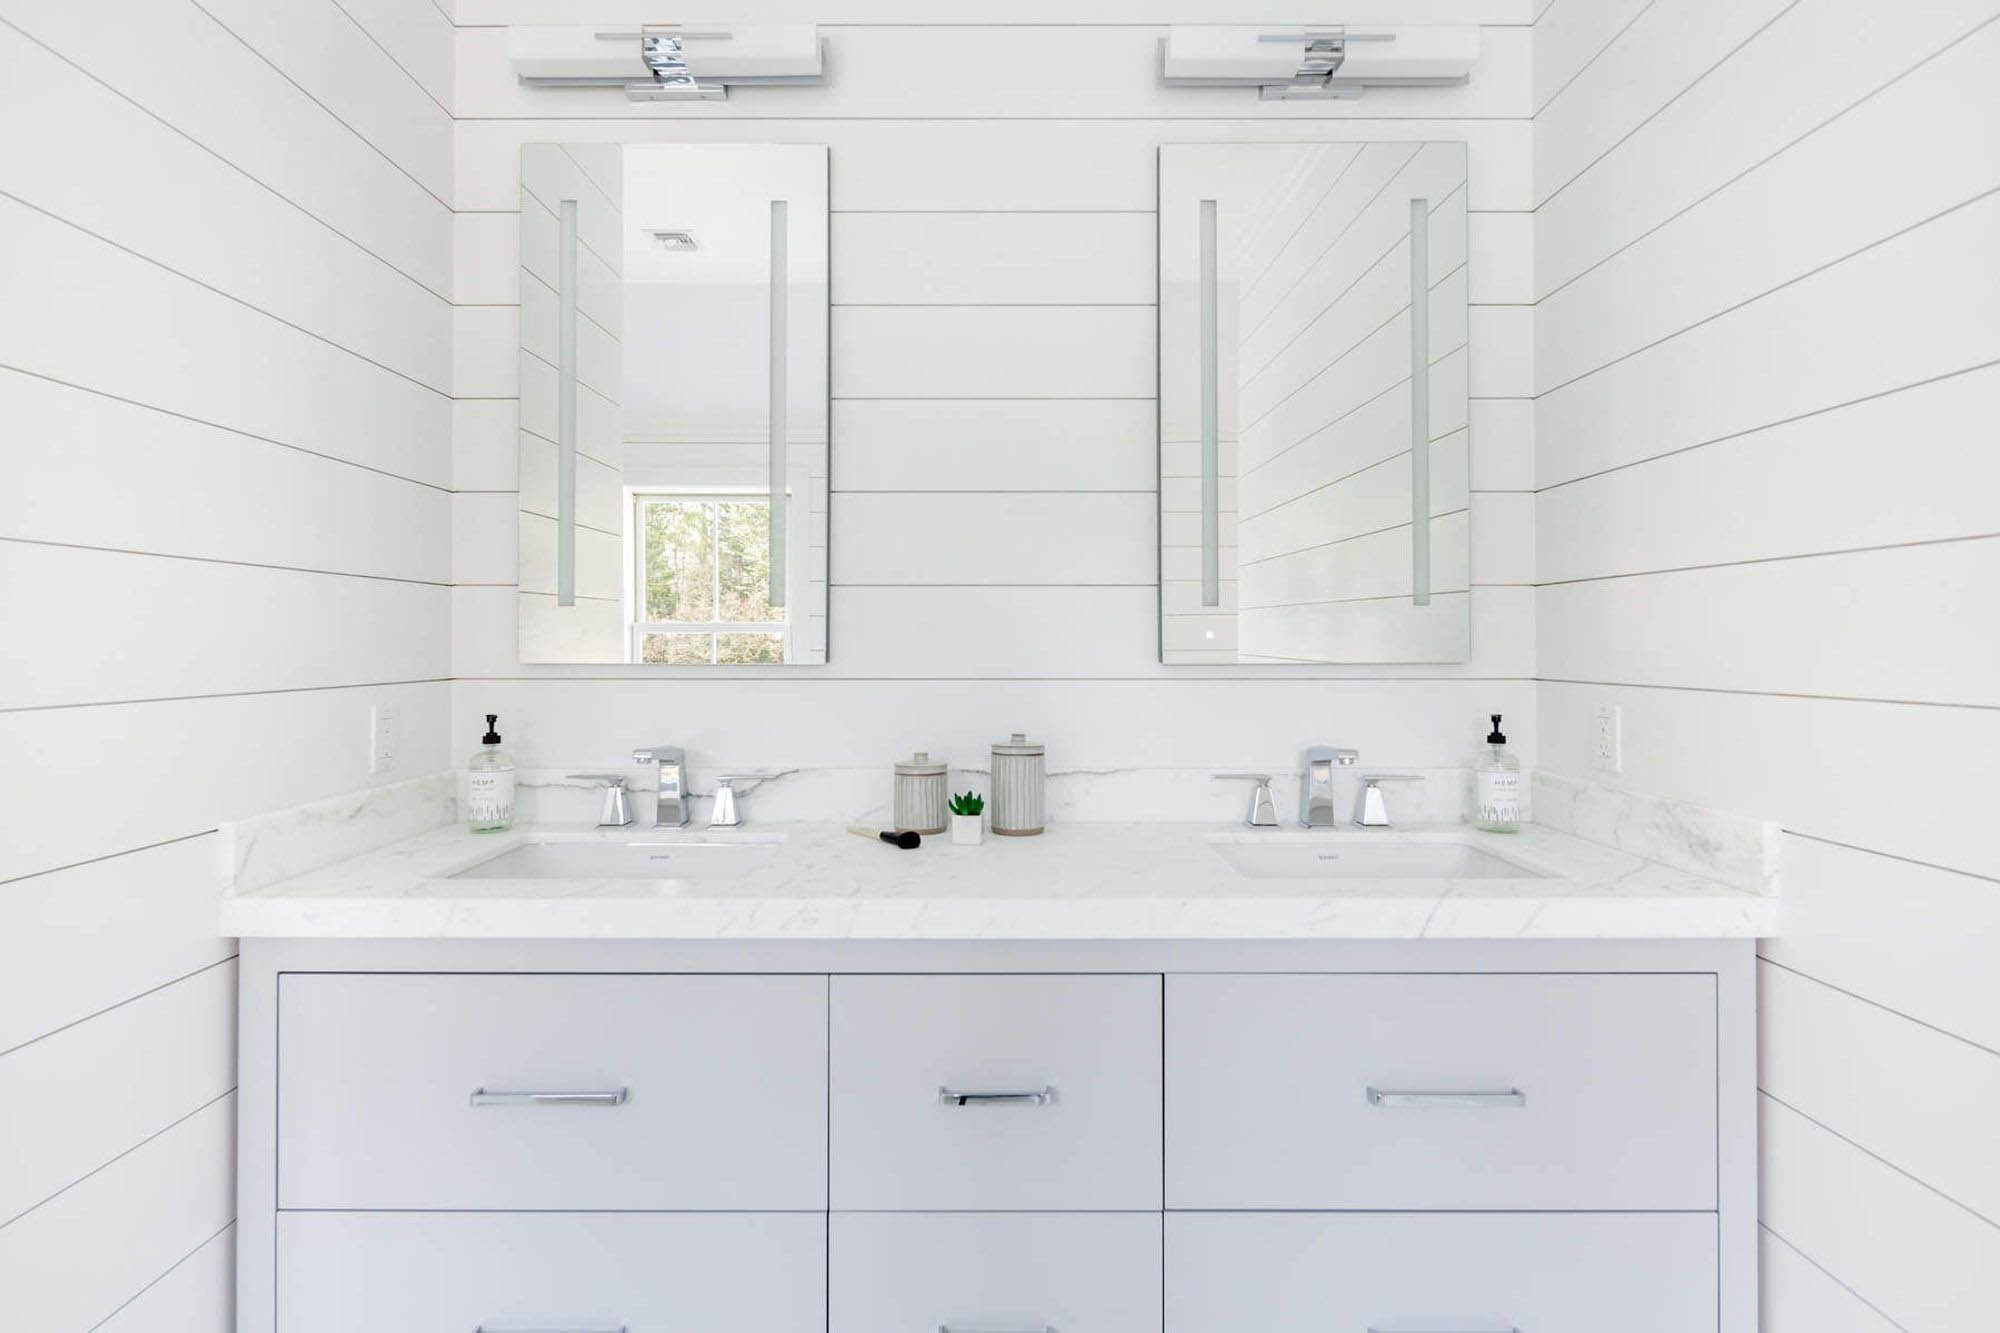 Beautiful modern bathroom design with shiplap wall trim. Double sink with marble countertop. Super clean vanity with flat faced drawers.